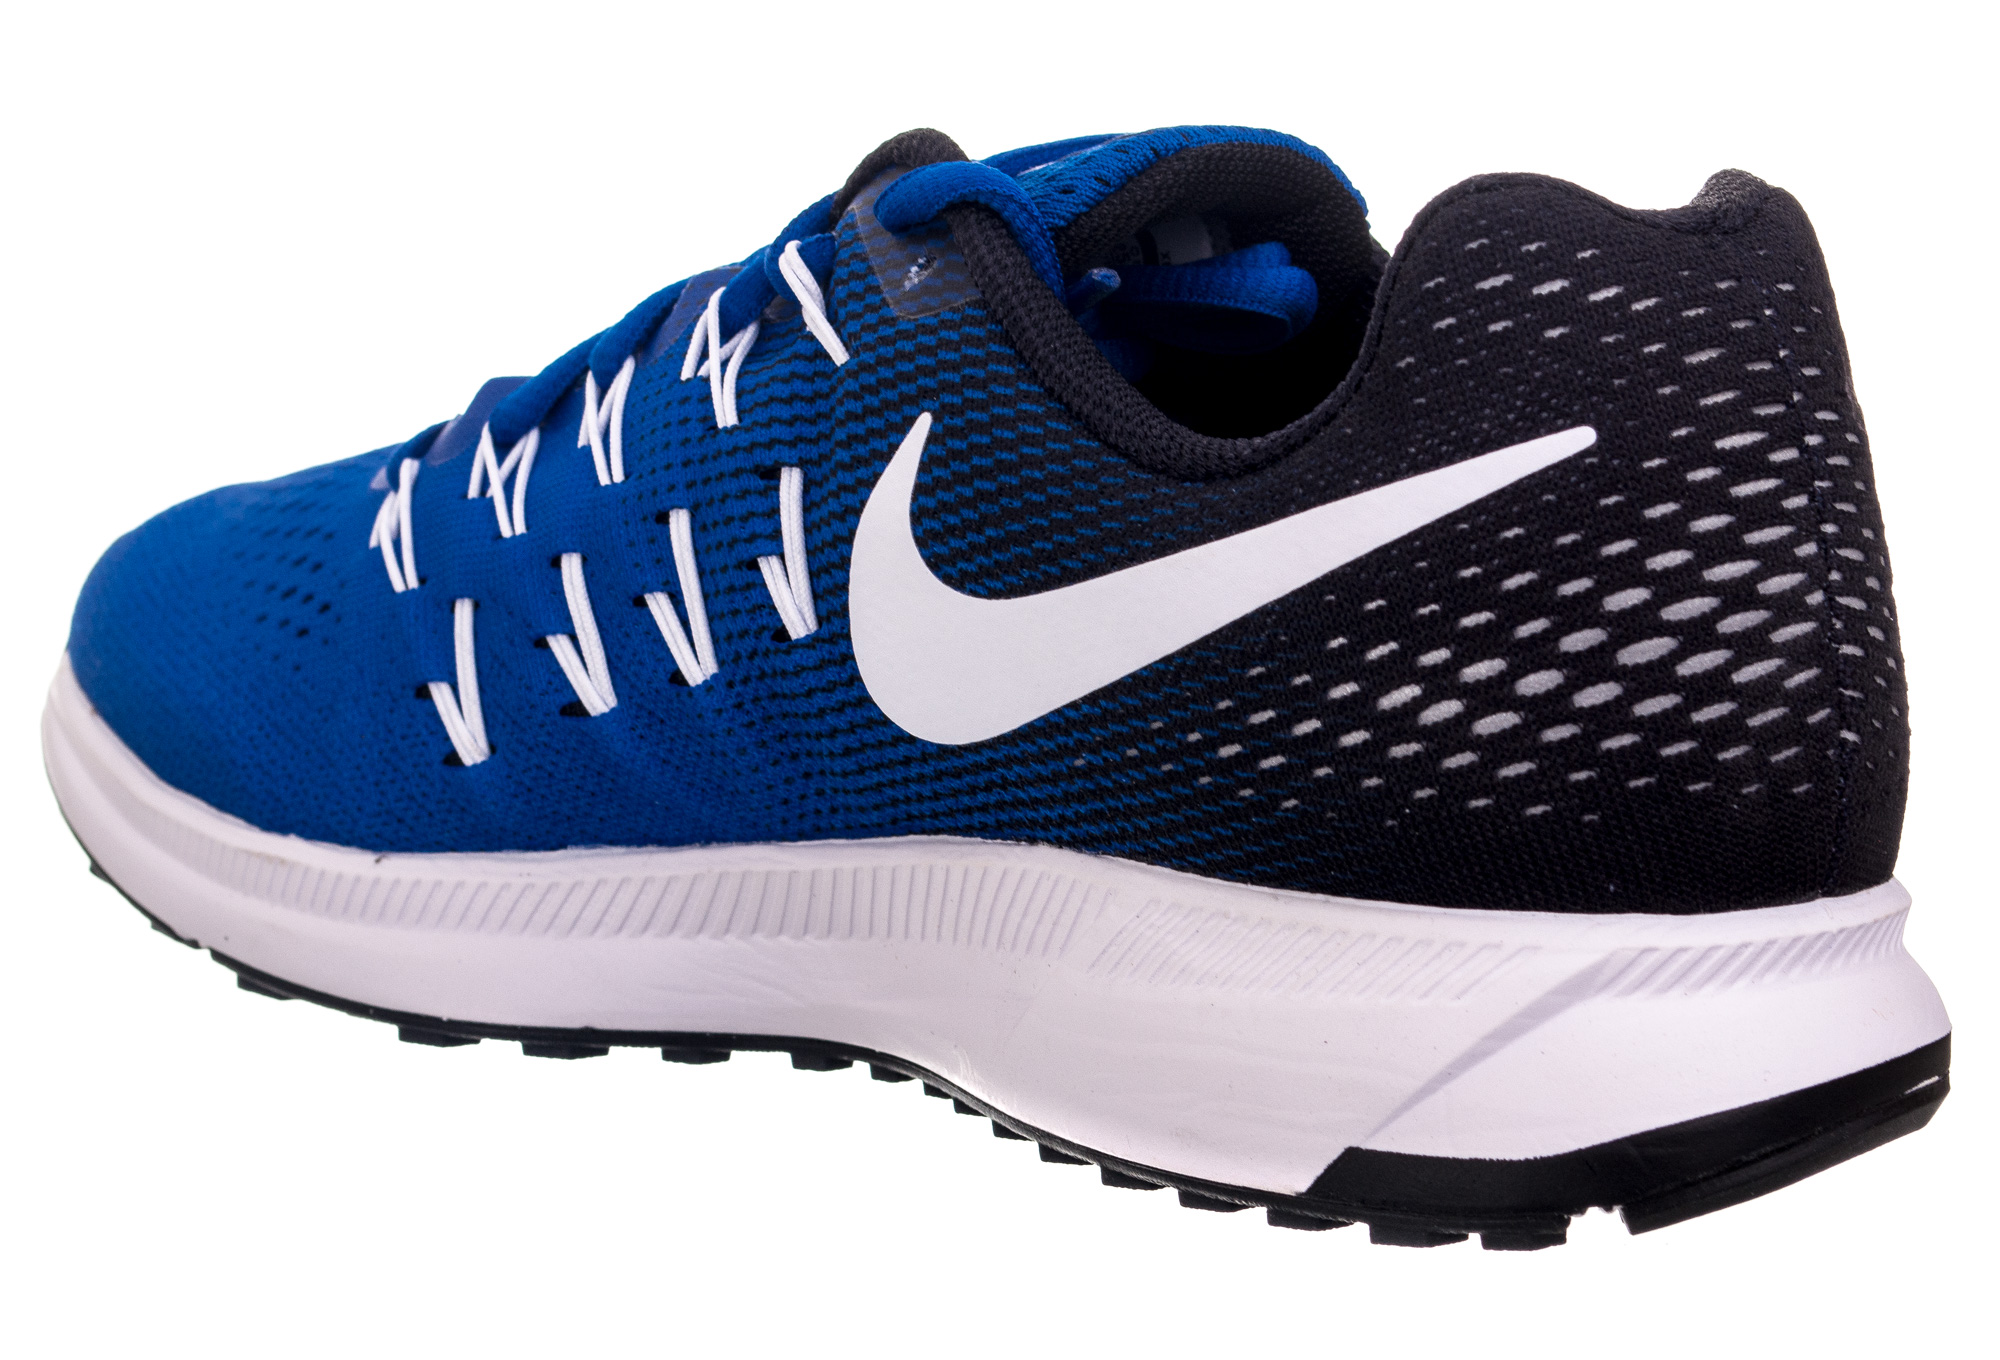 laufschuhe nike air zoom pegasus 33 herren blau. Black Bedroom Furniture Sets. Home Design Ideas